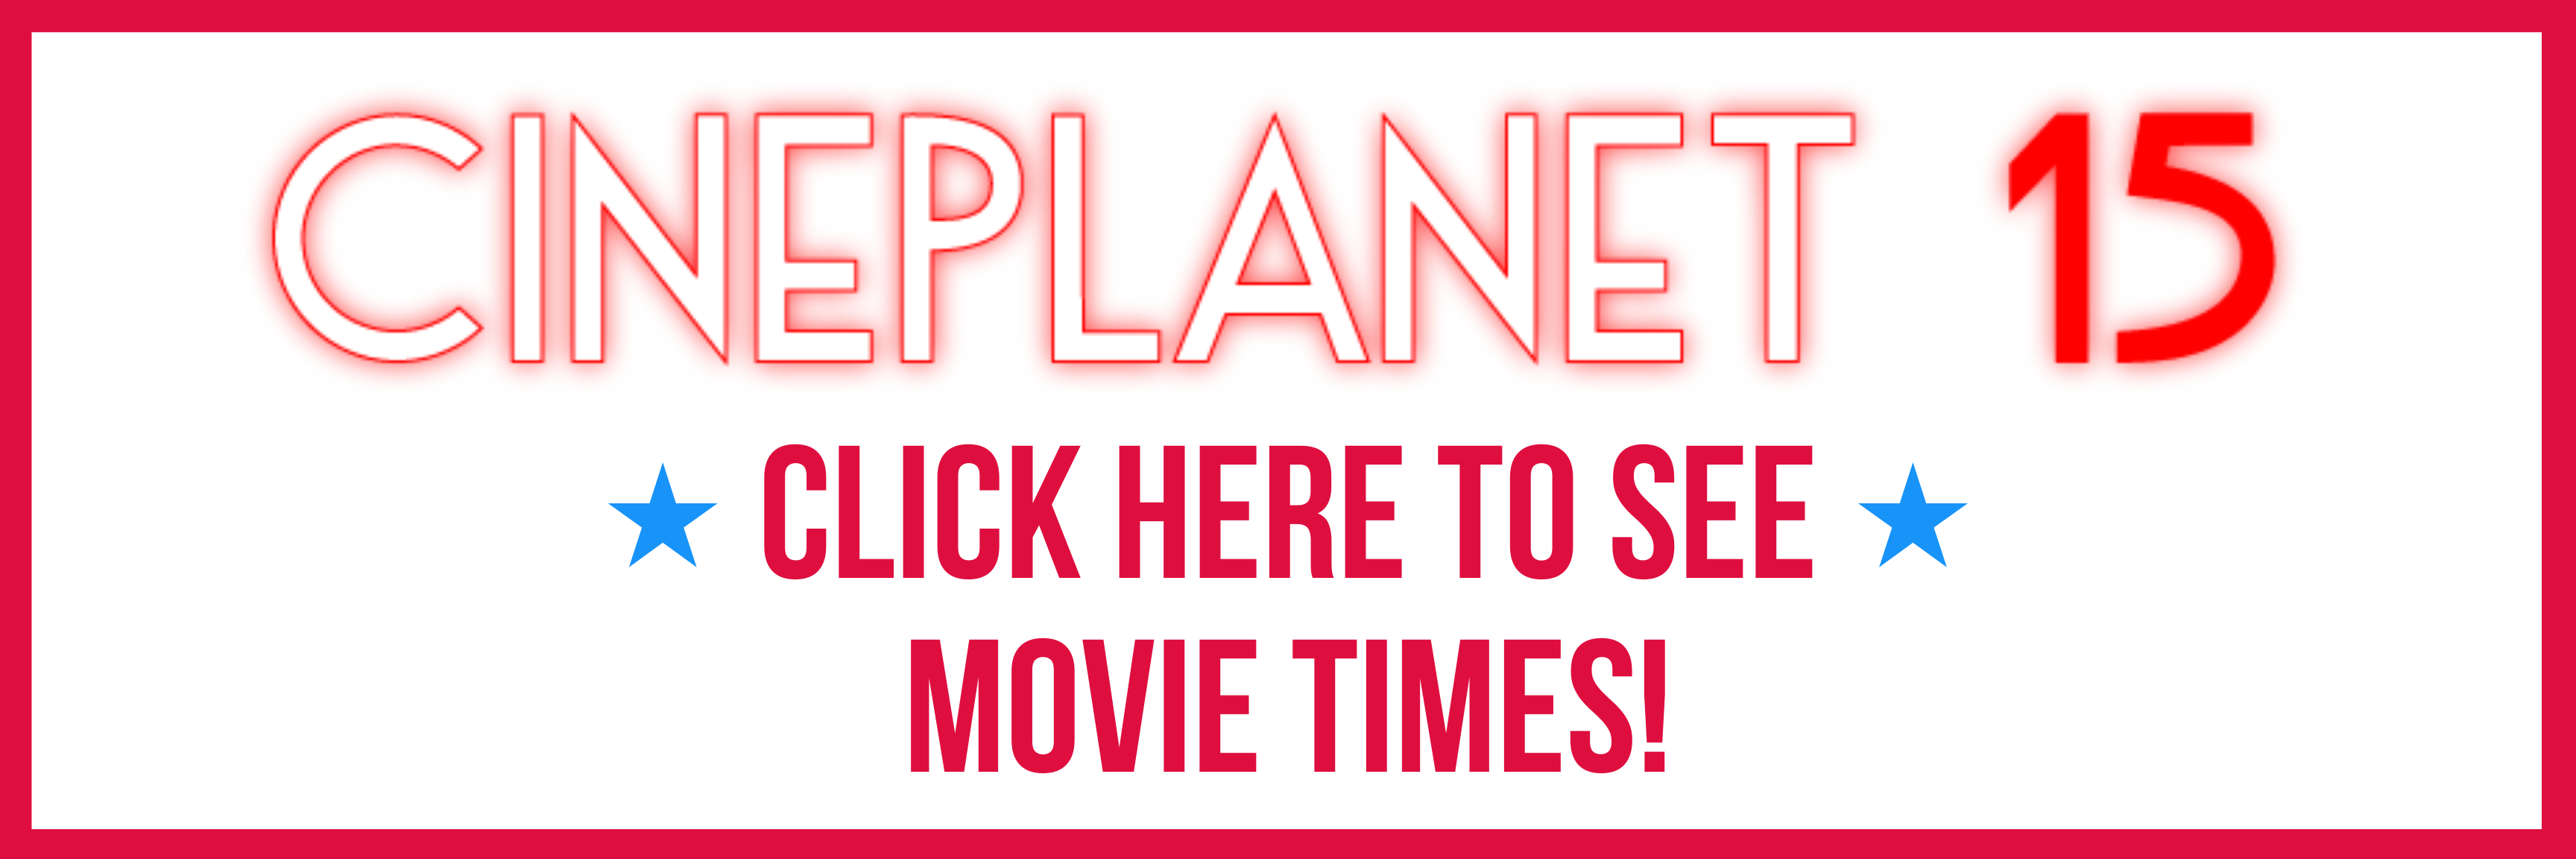 Click for Movie Times!